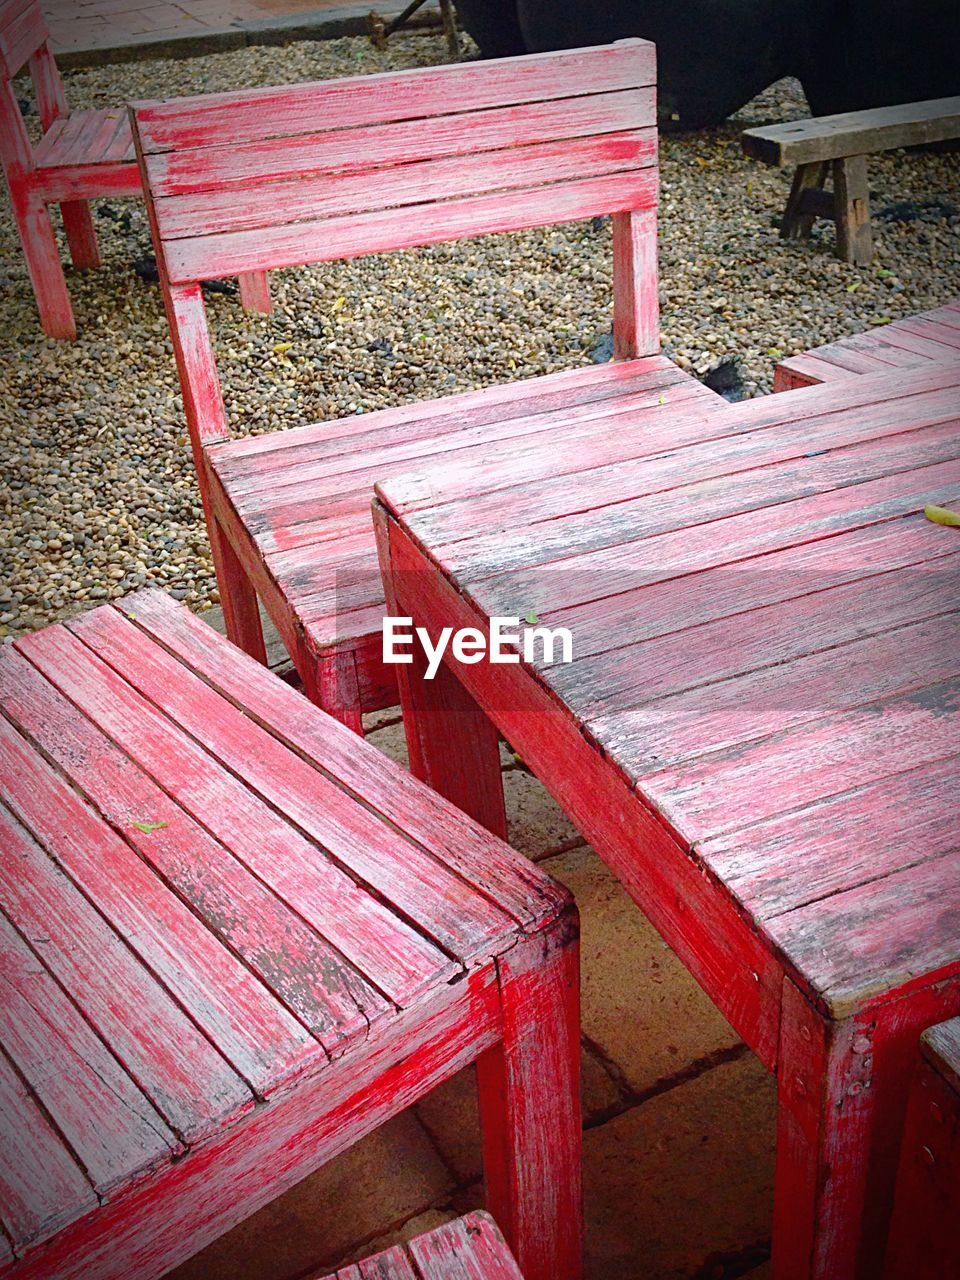 chair, no people, red, wood - material, outdoors, day, seat, nature